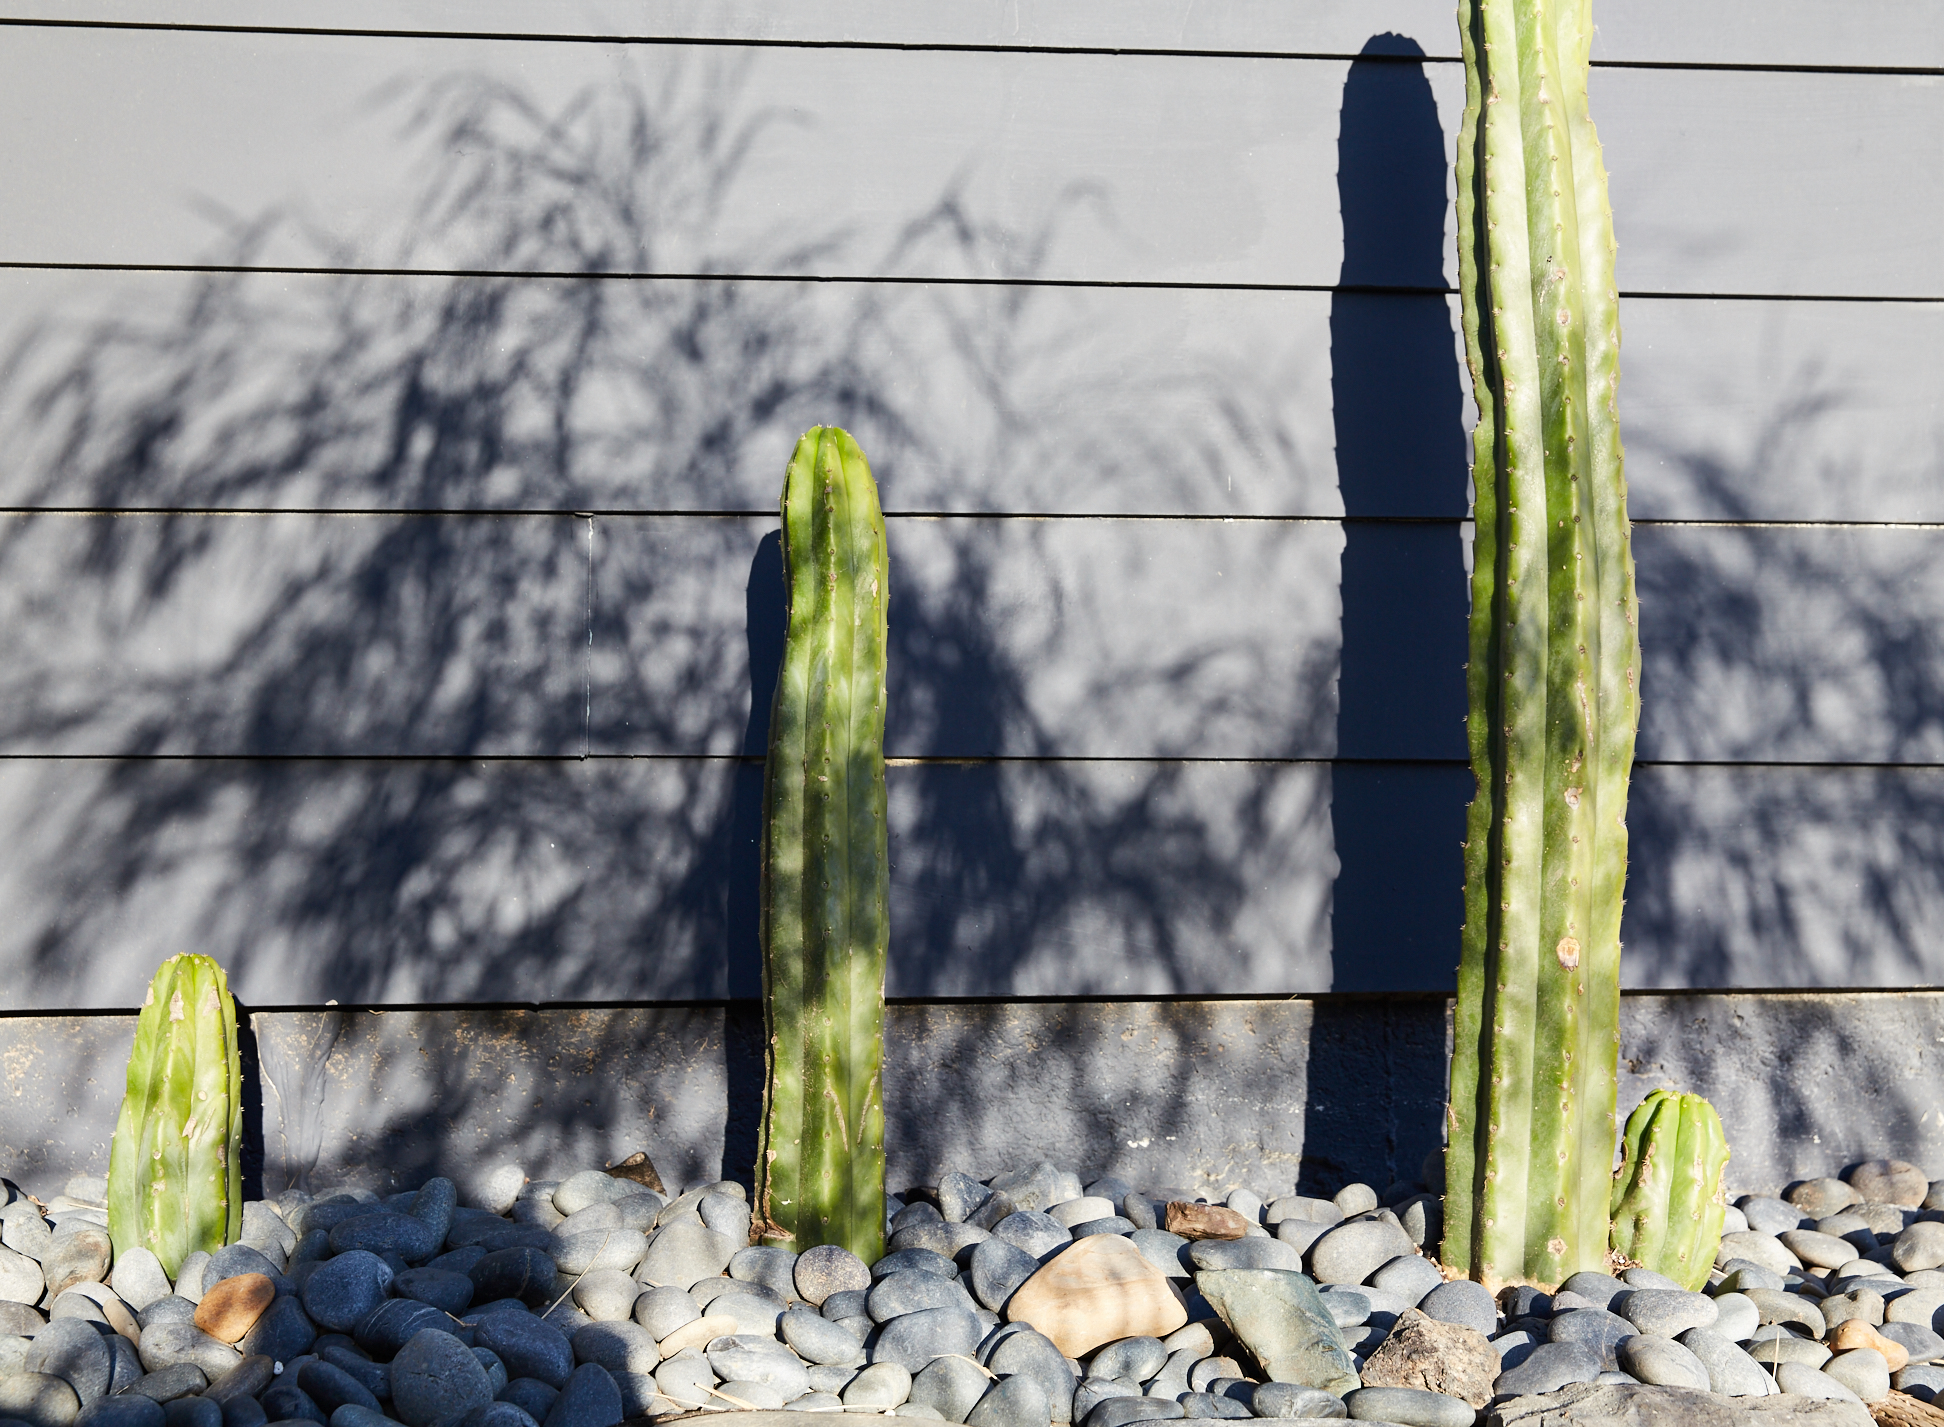 Cacti in Backyard